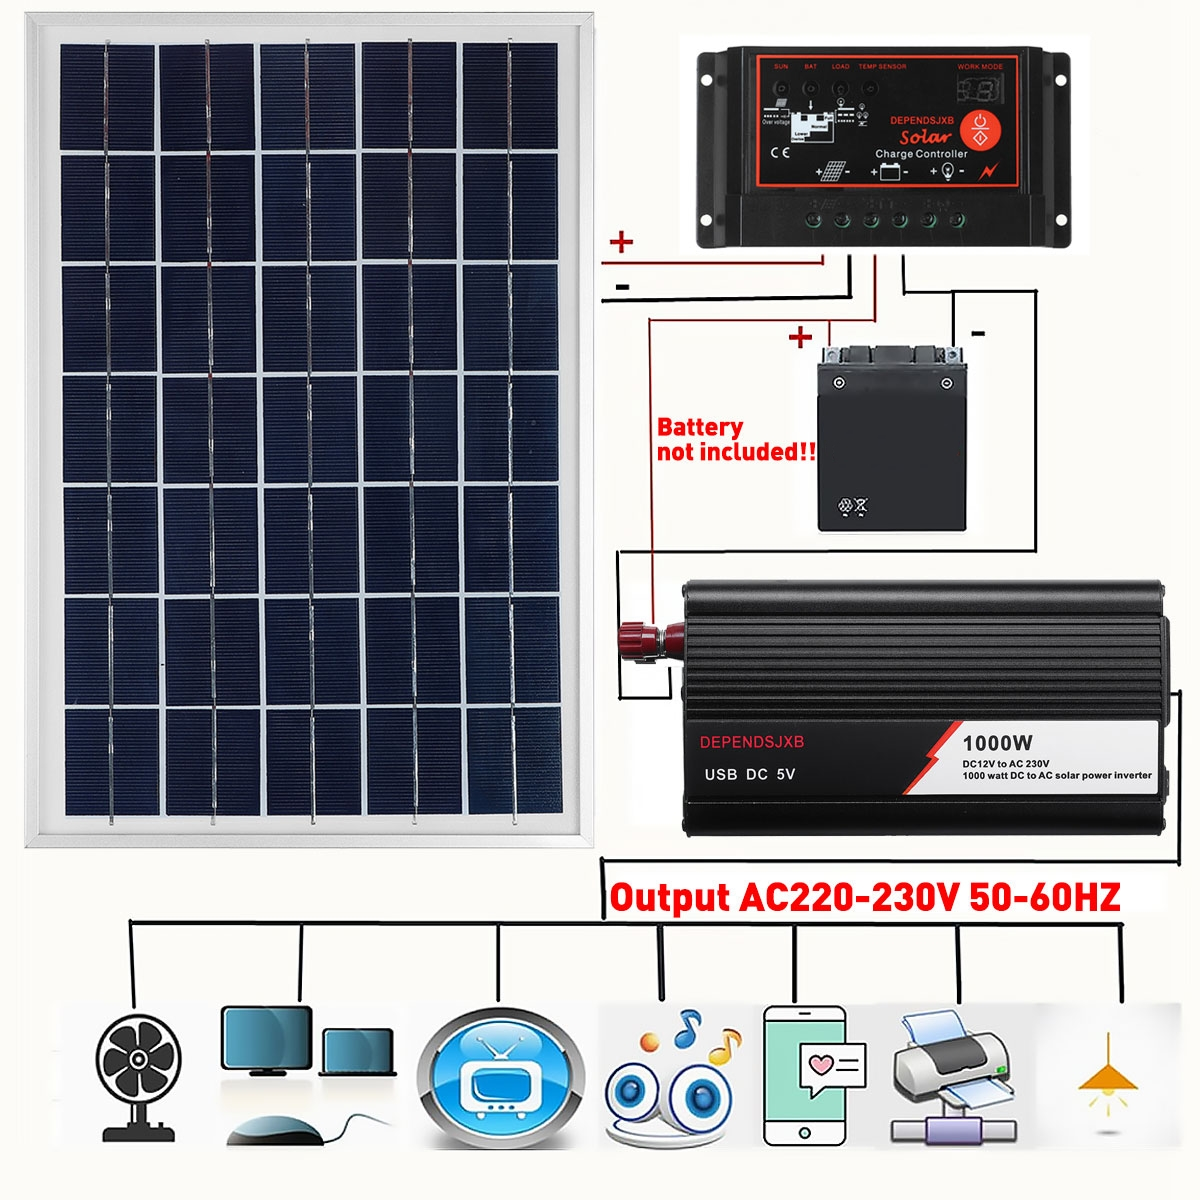 DOKIO 10A 12V//24V Solar Charge Controller Intelligent Charge Regulator with Dual USB 5V Output for Solar Panel Battery